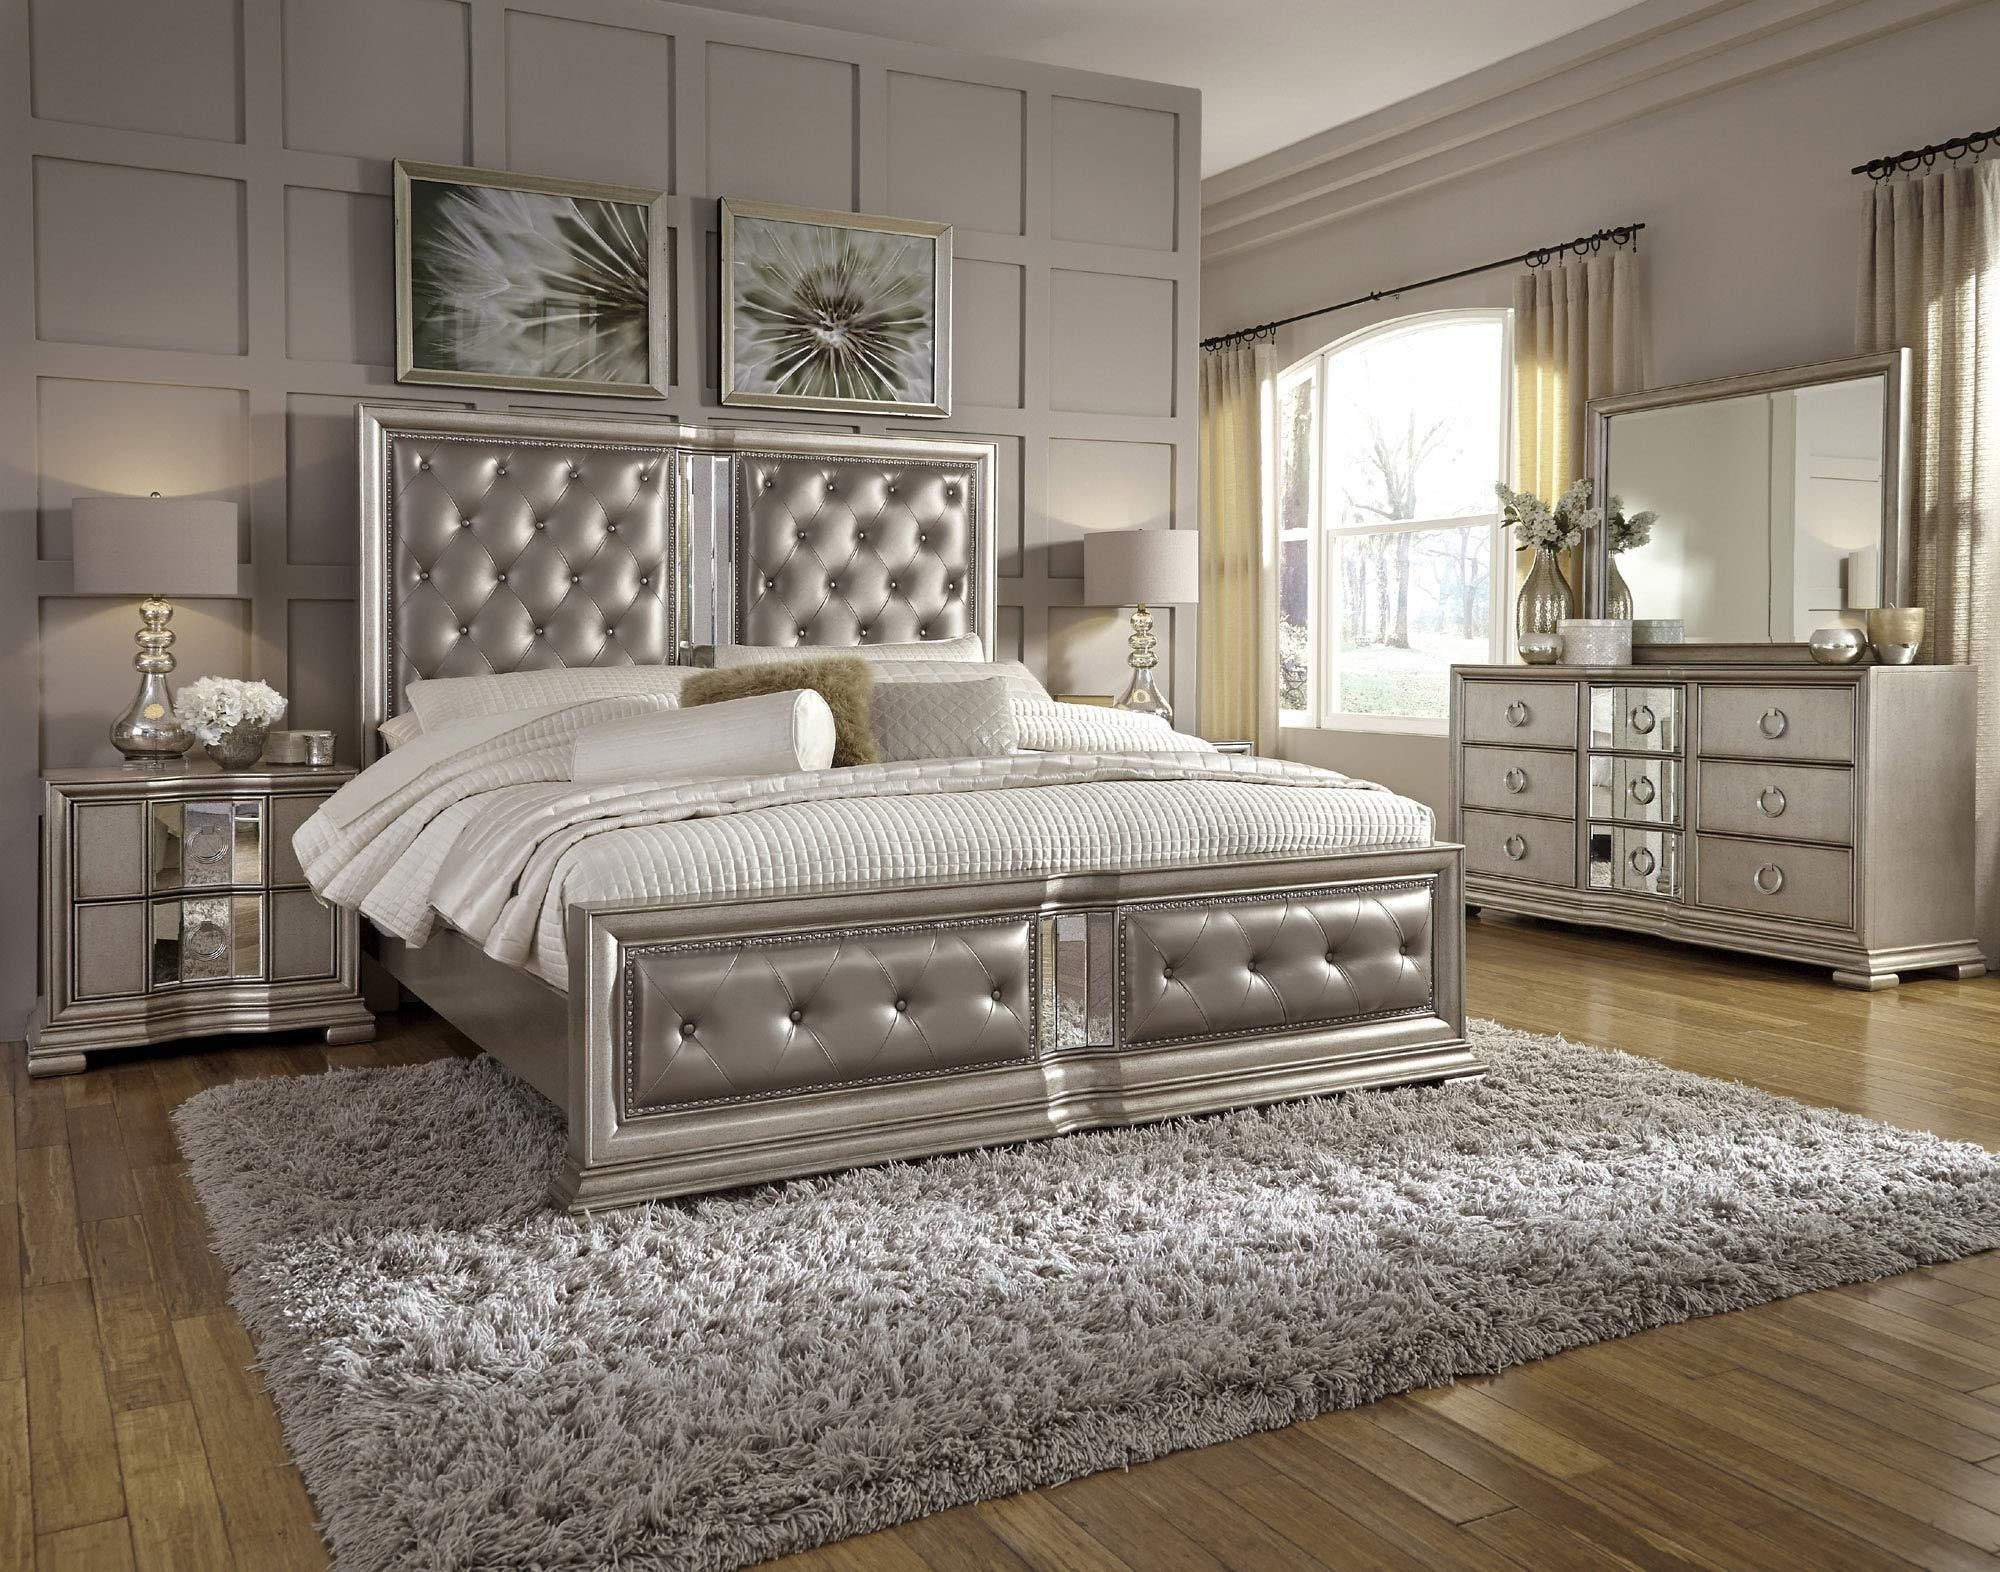 Best Couture Queen Button Tufted Upholstered Panel Bed In 400 x 300